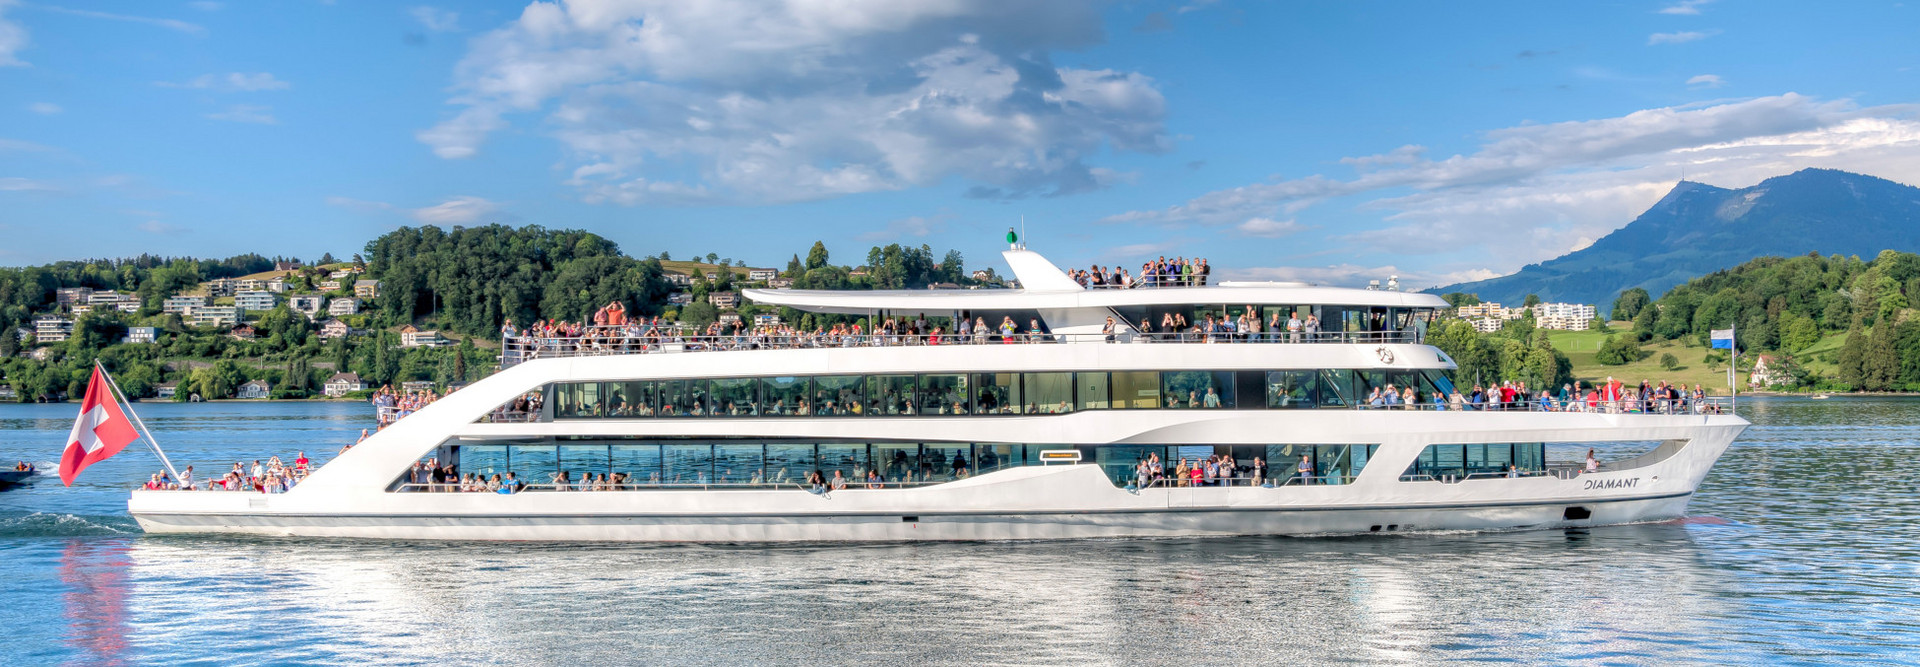 The motor ship Diamant sails on Lake Lucerne on a beautiful summer day fully loaded with happy guests.